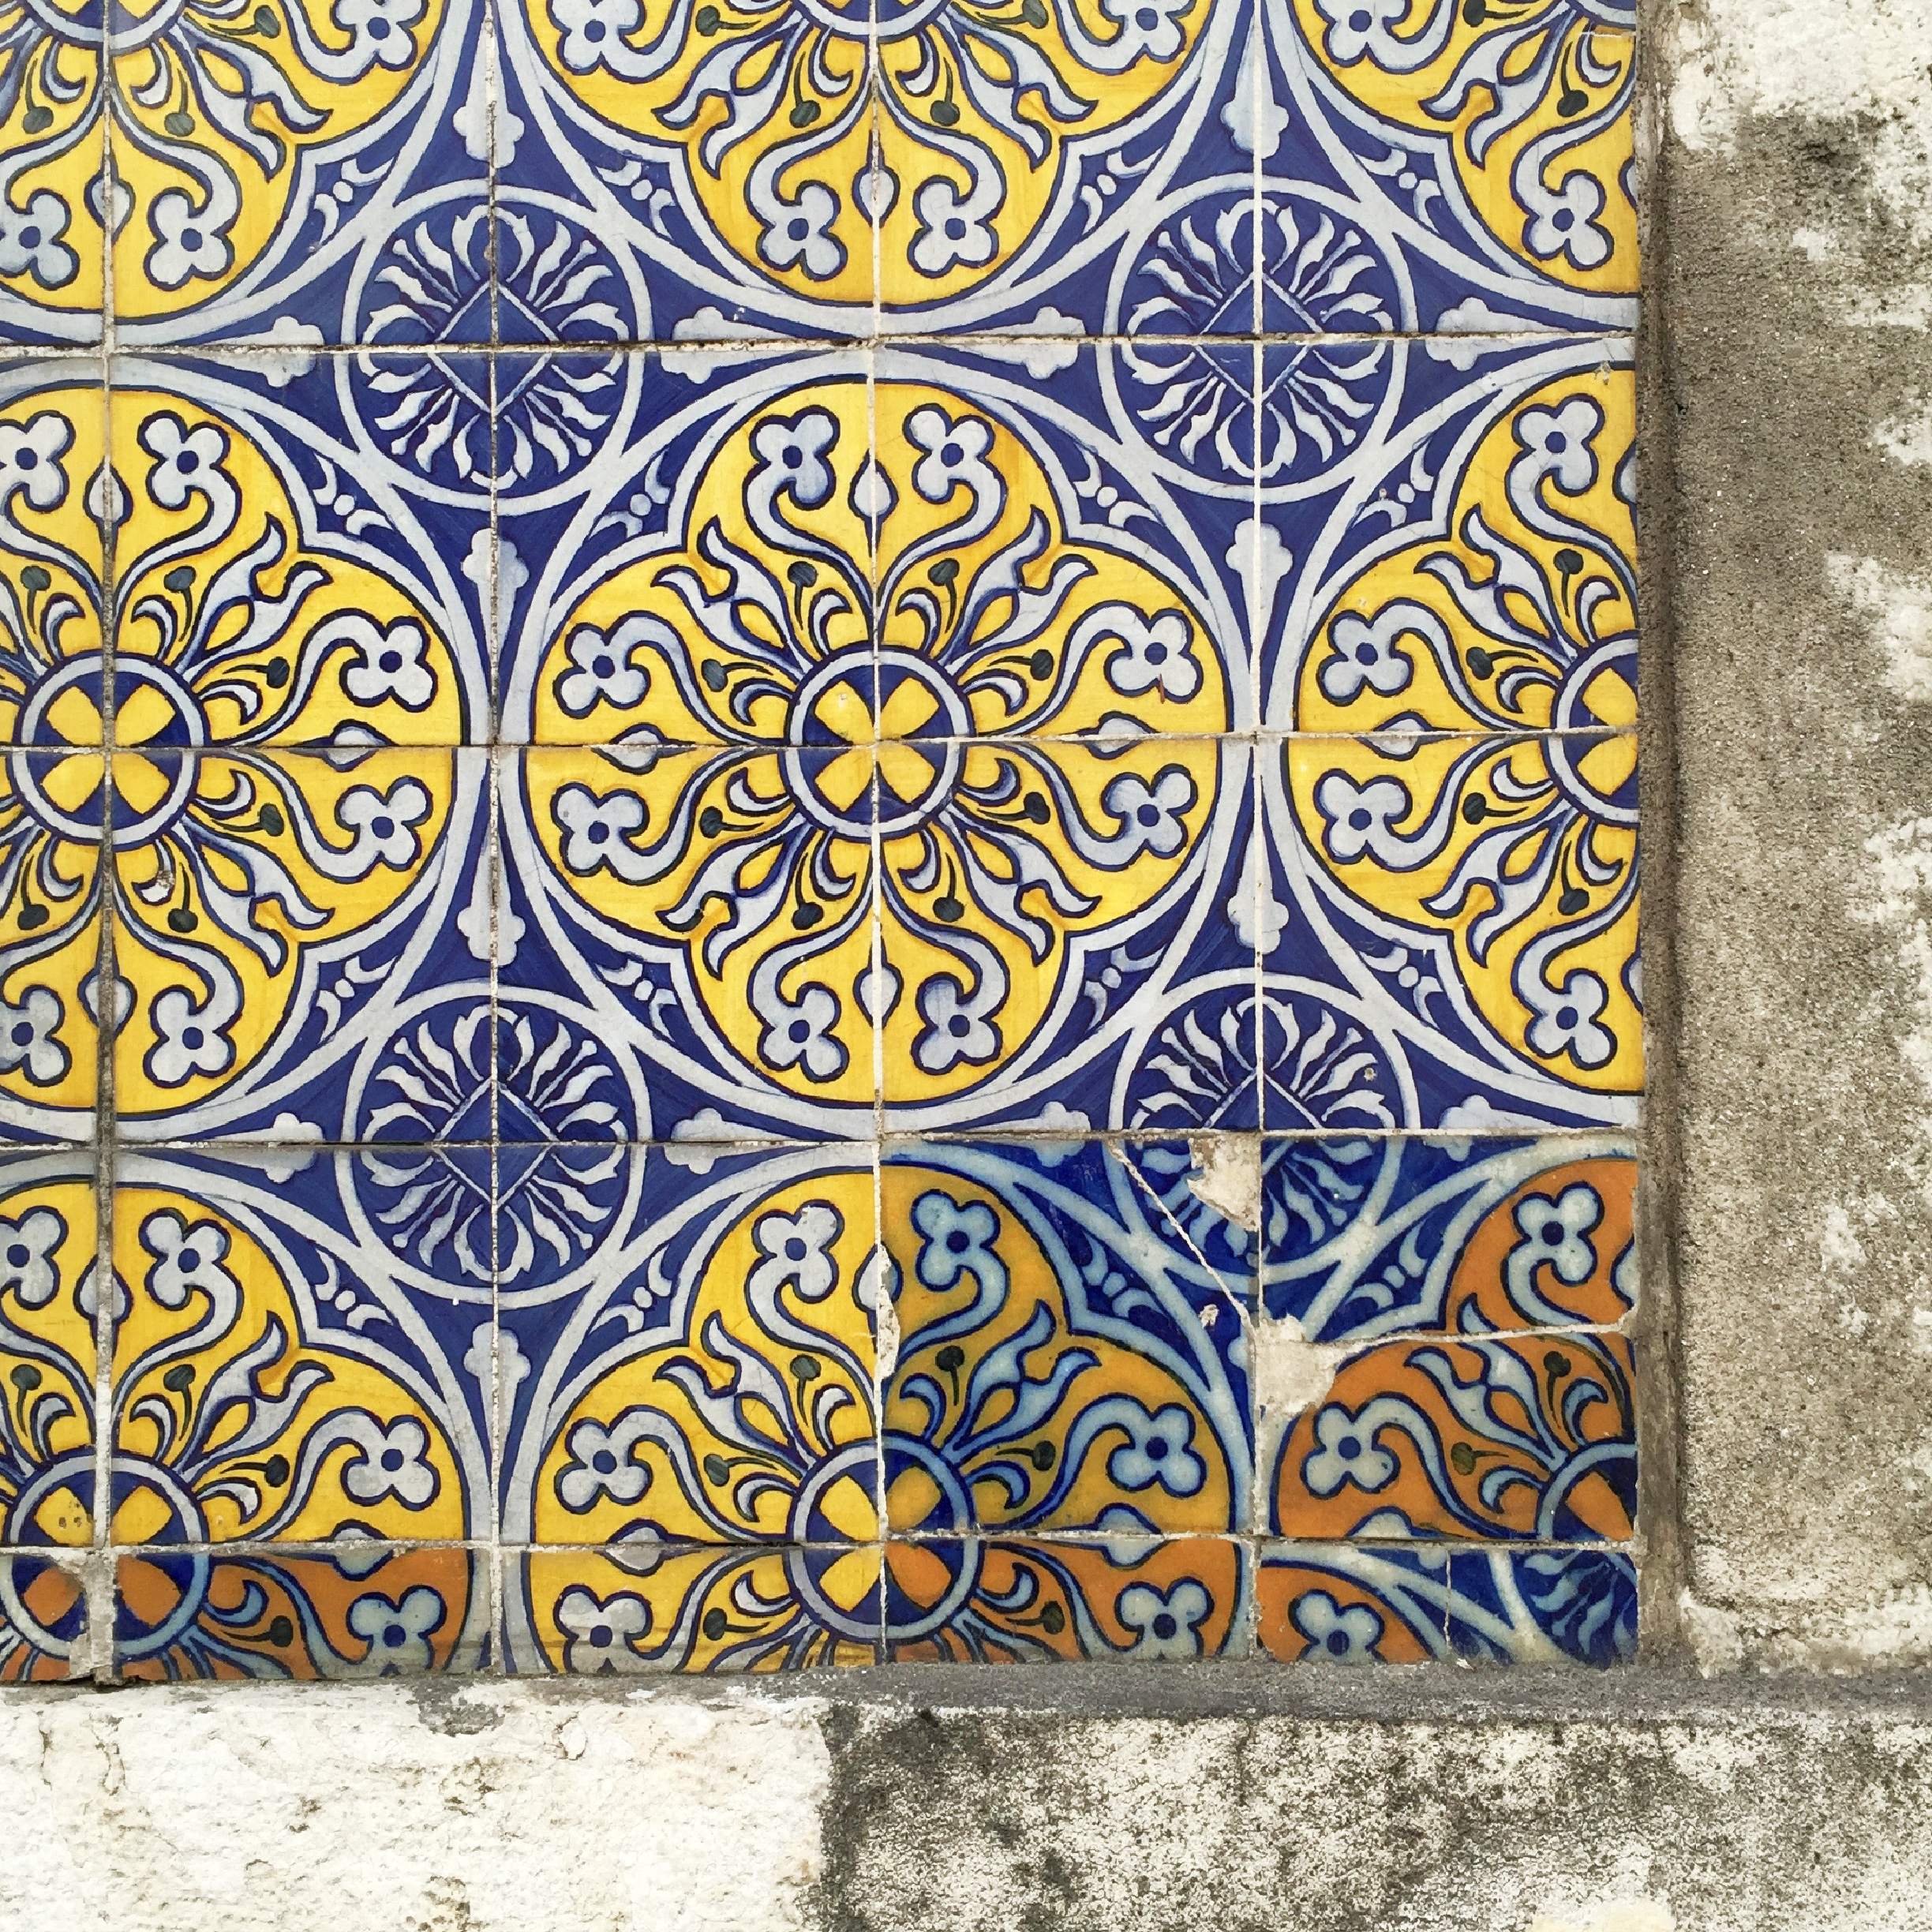 Blue Yellow Stone Tiles.jpg